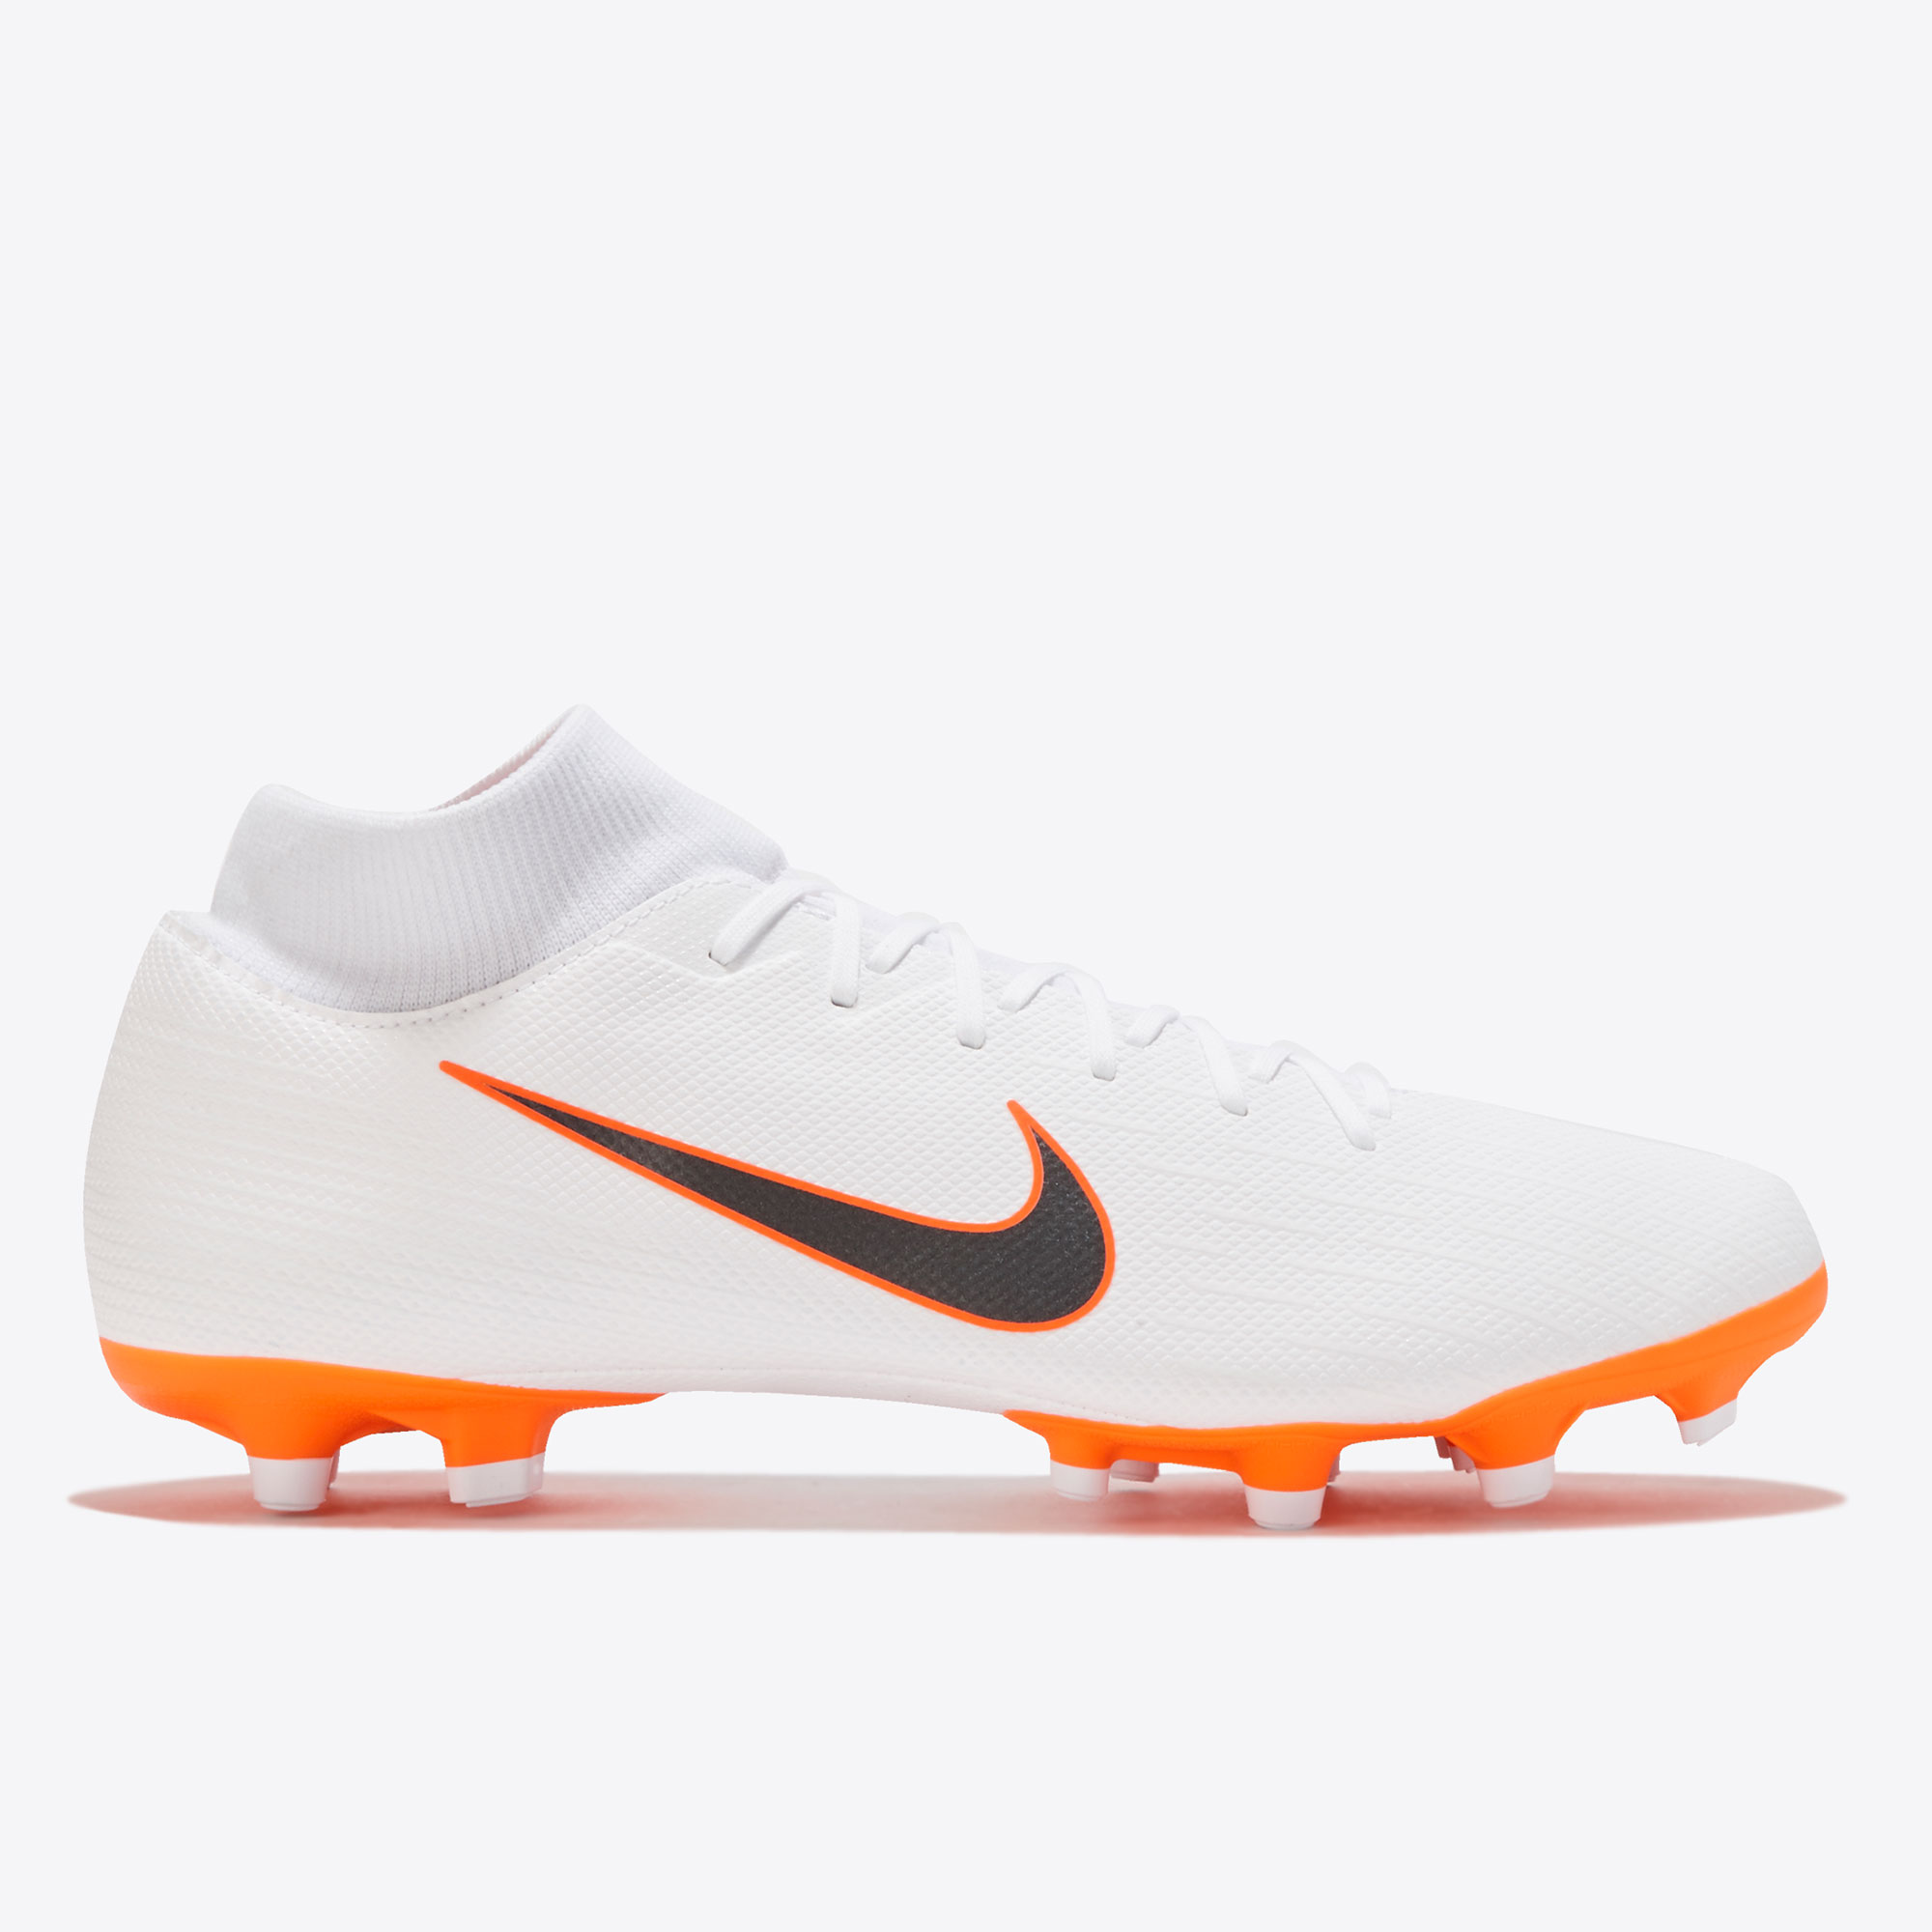 Chaussures de football Nike Mercurial Superfly 6 Academy multi-terrains